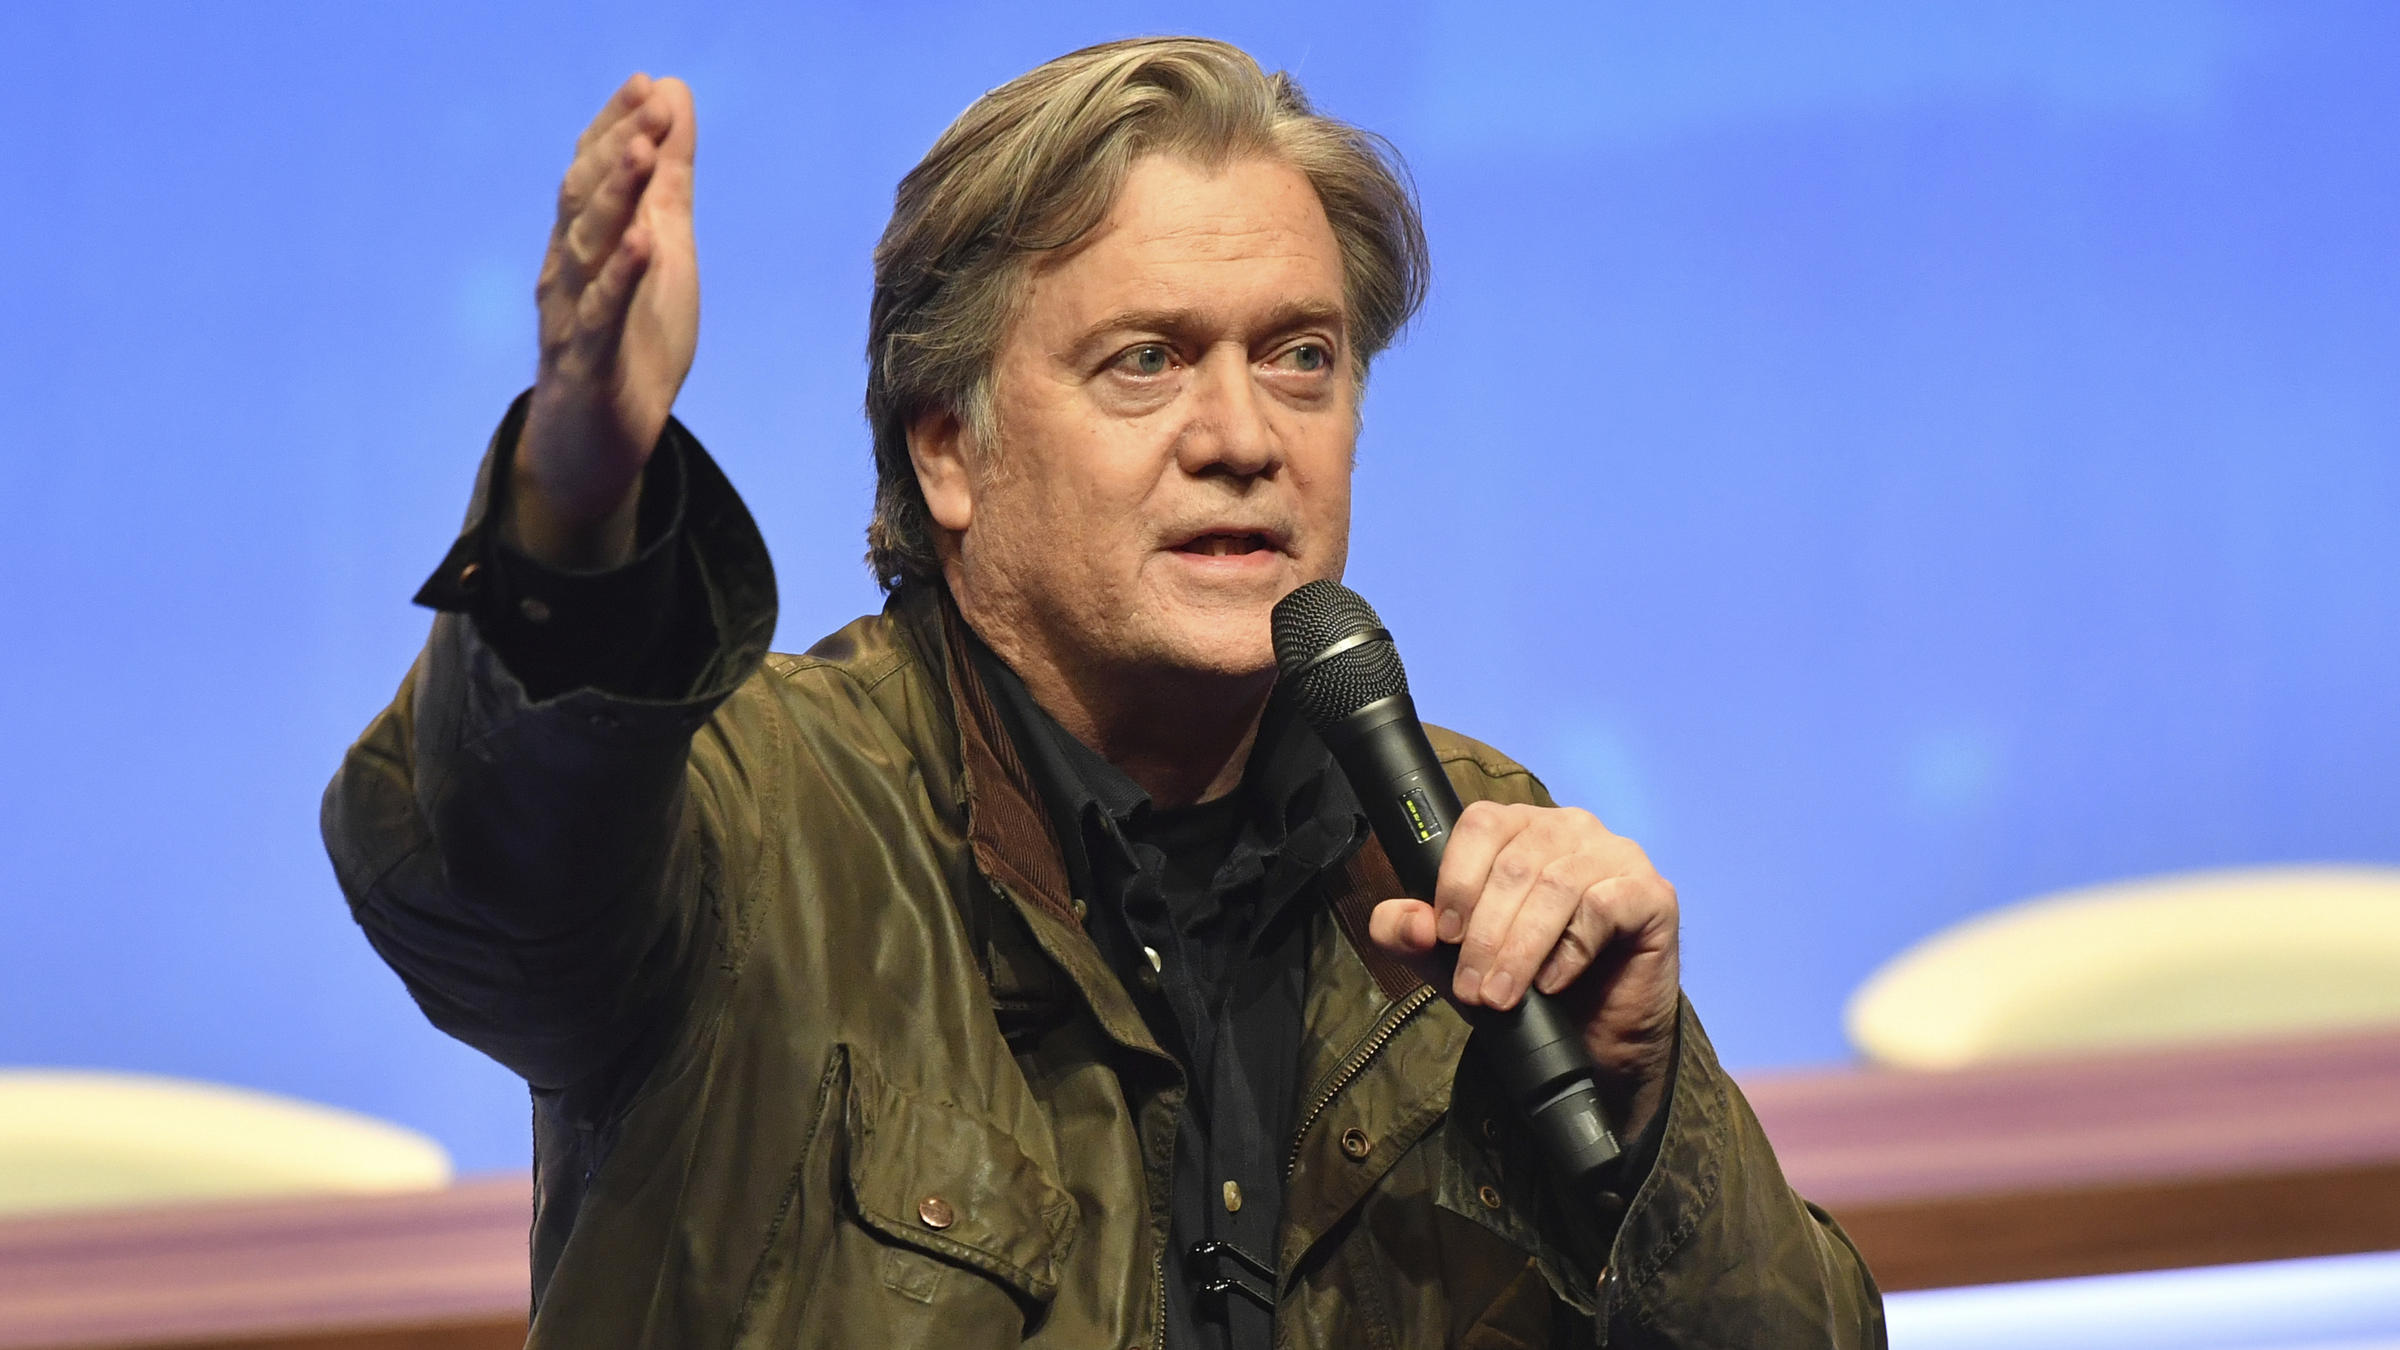 Trump's ex-aide Bannon to address National Front congress in France